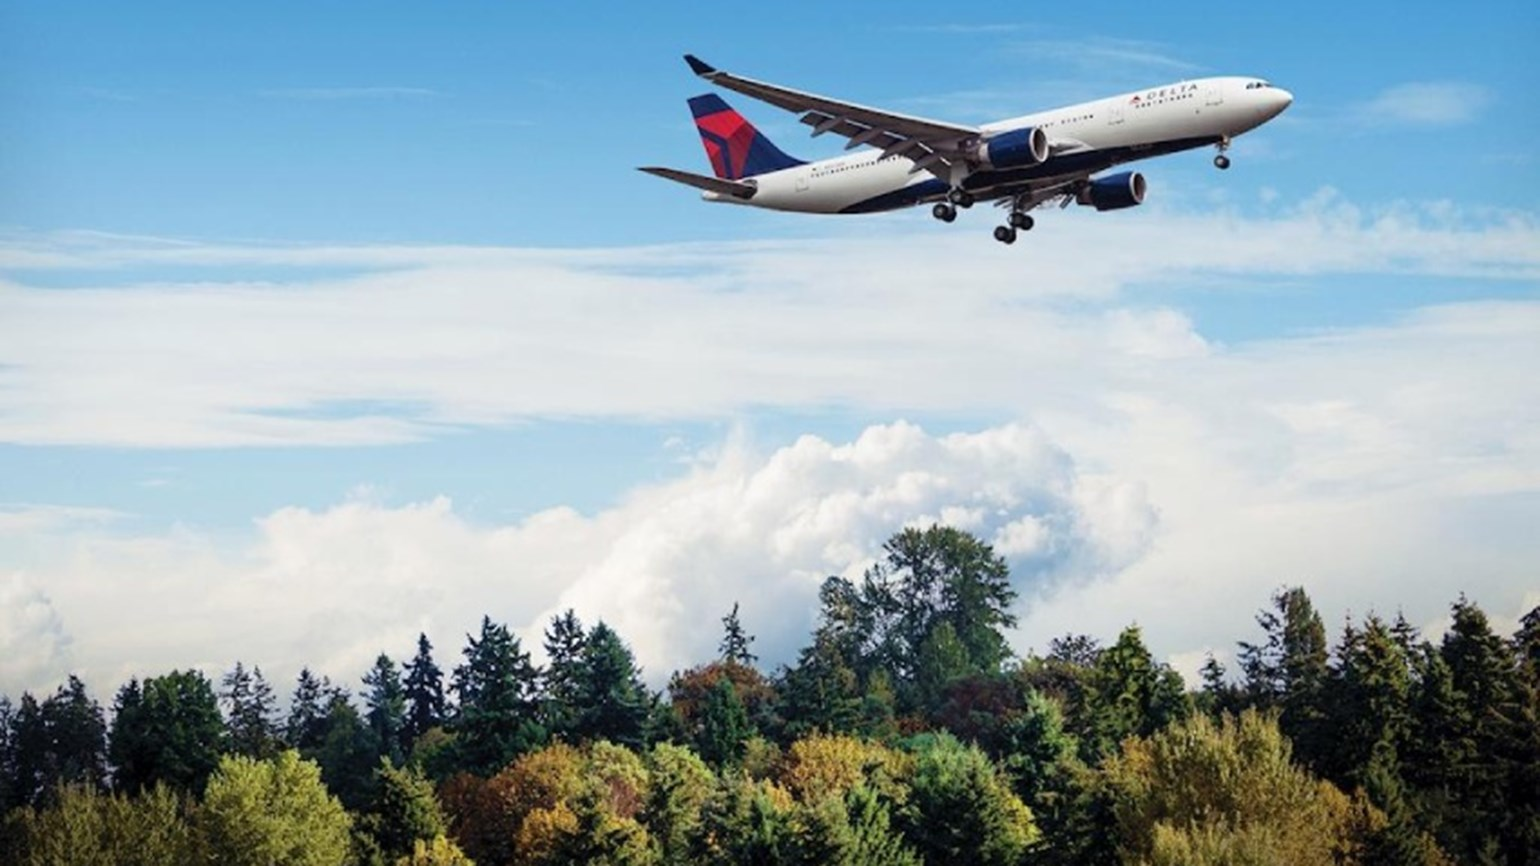 A Delta aircraft flying over trees